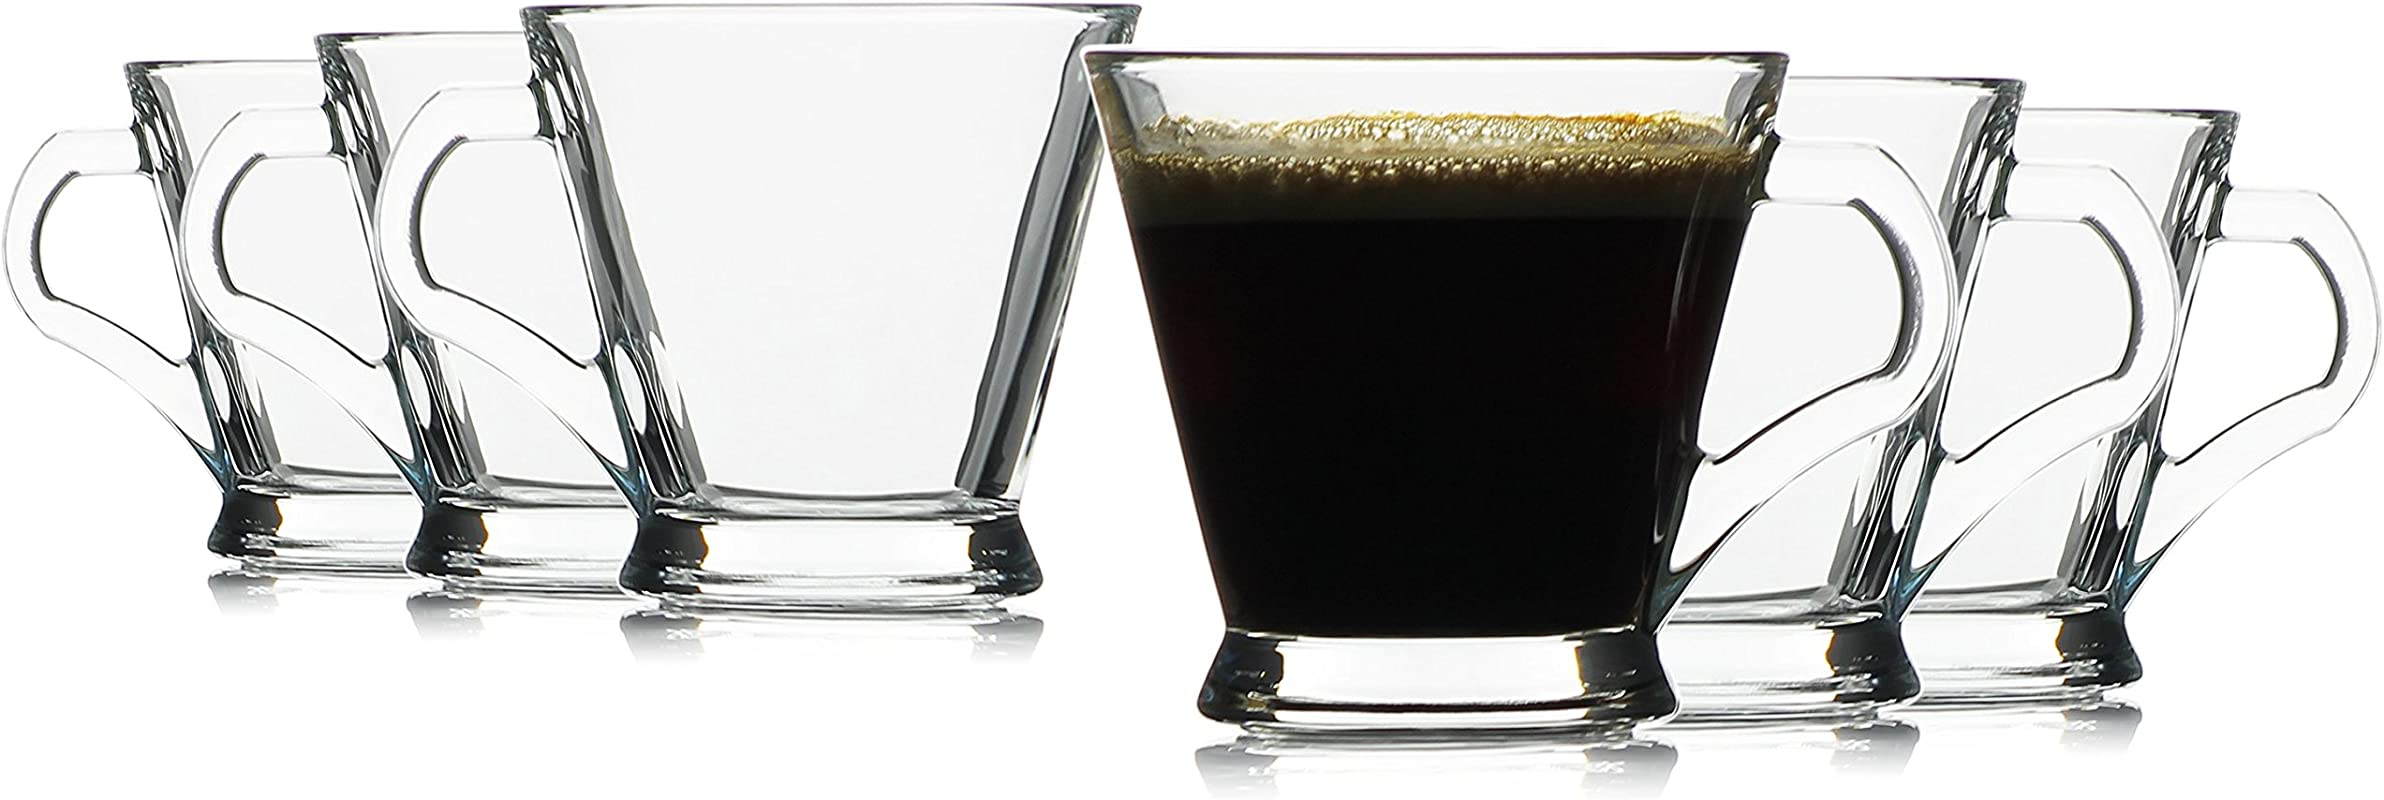 Hikari 6oz Espresso Glass Cups W Handles Keeps Beverages Hot Perfect For Nespresso Coffee Cappuccino Or Any Other Short Drinks Set Of 6 Gift Boxed